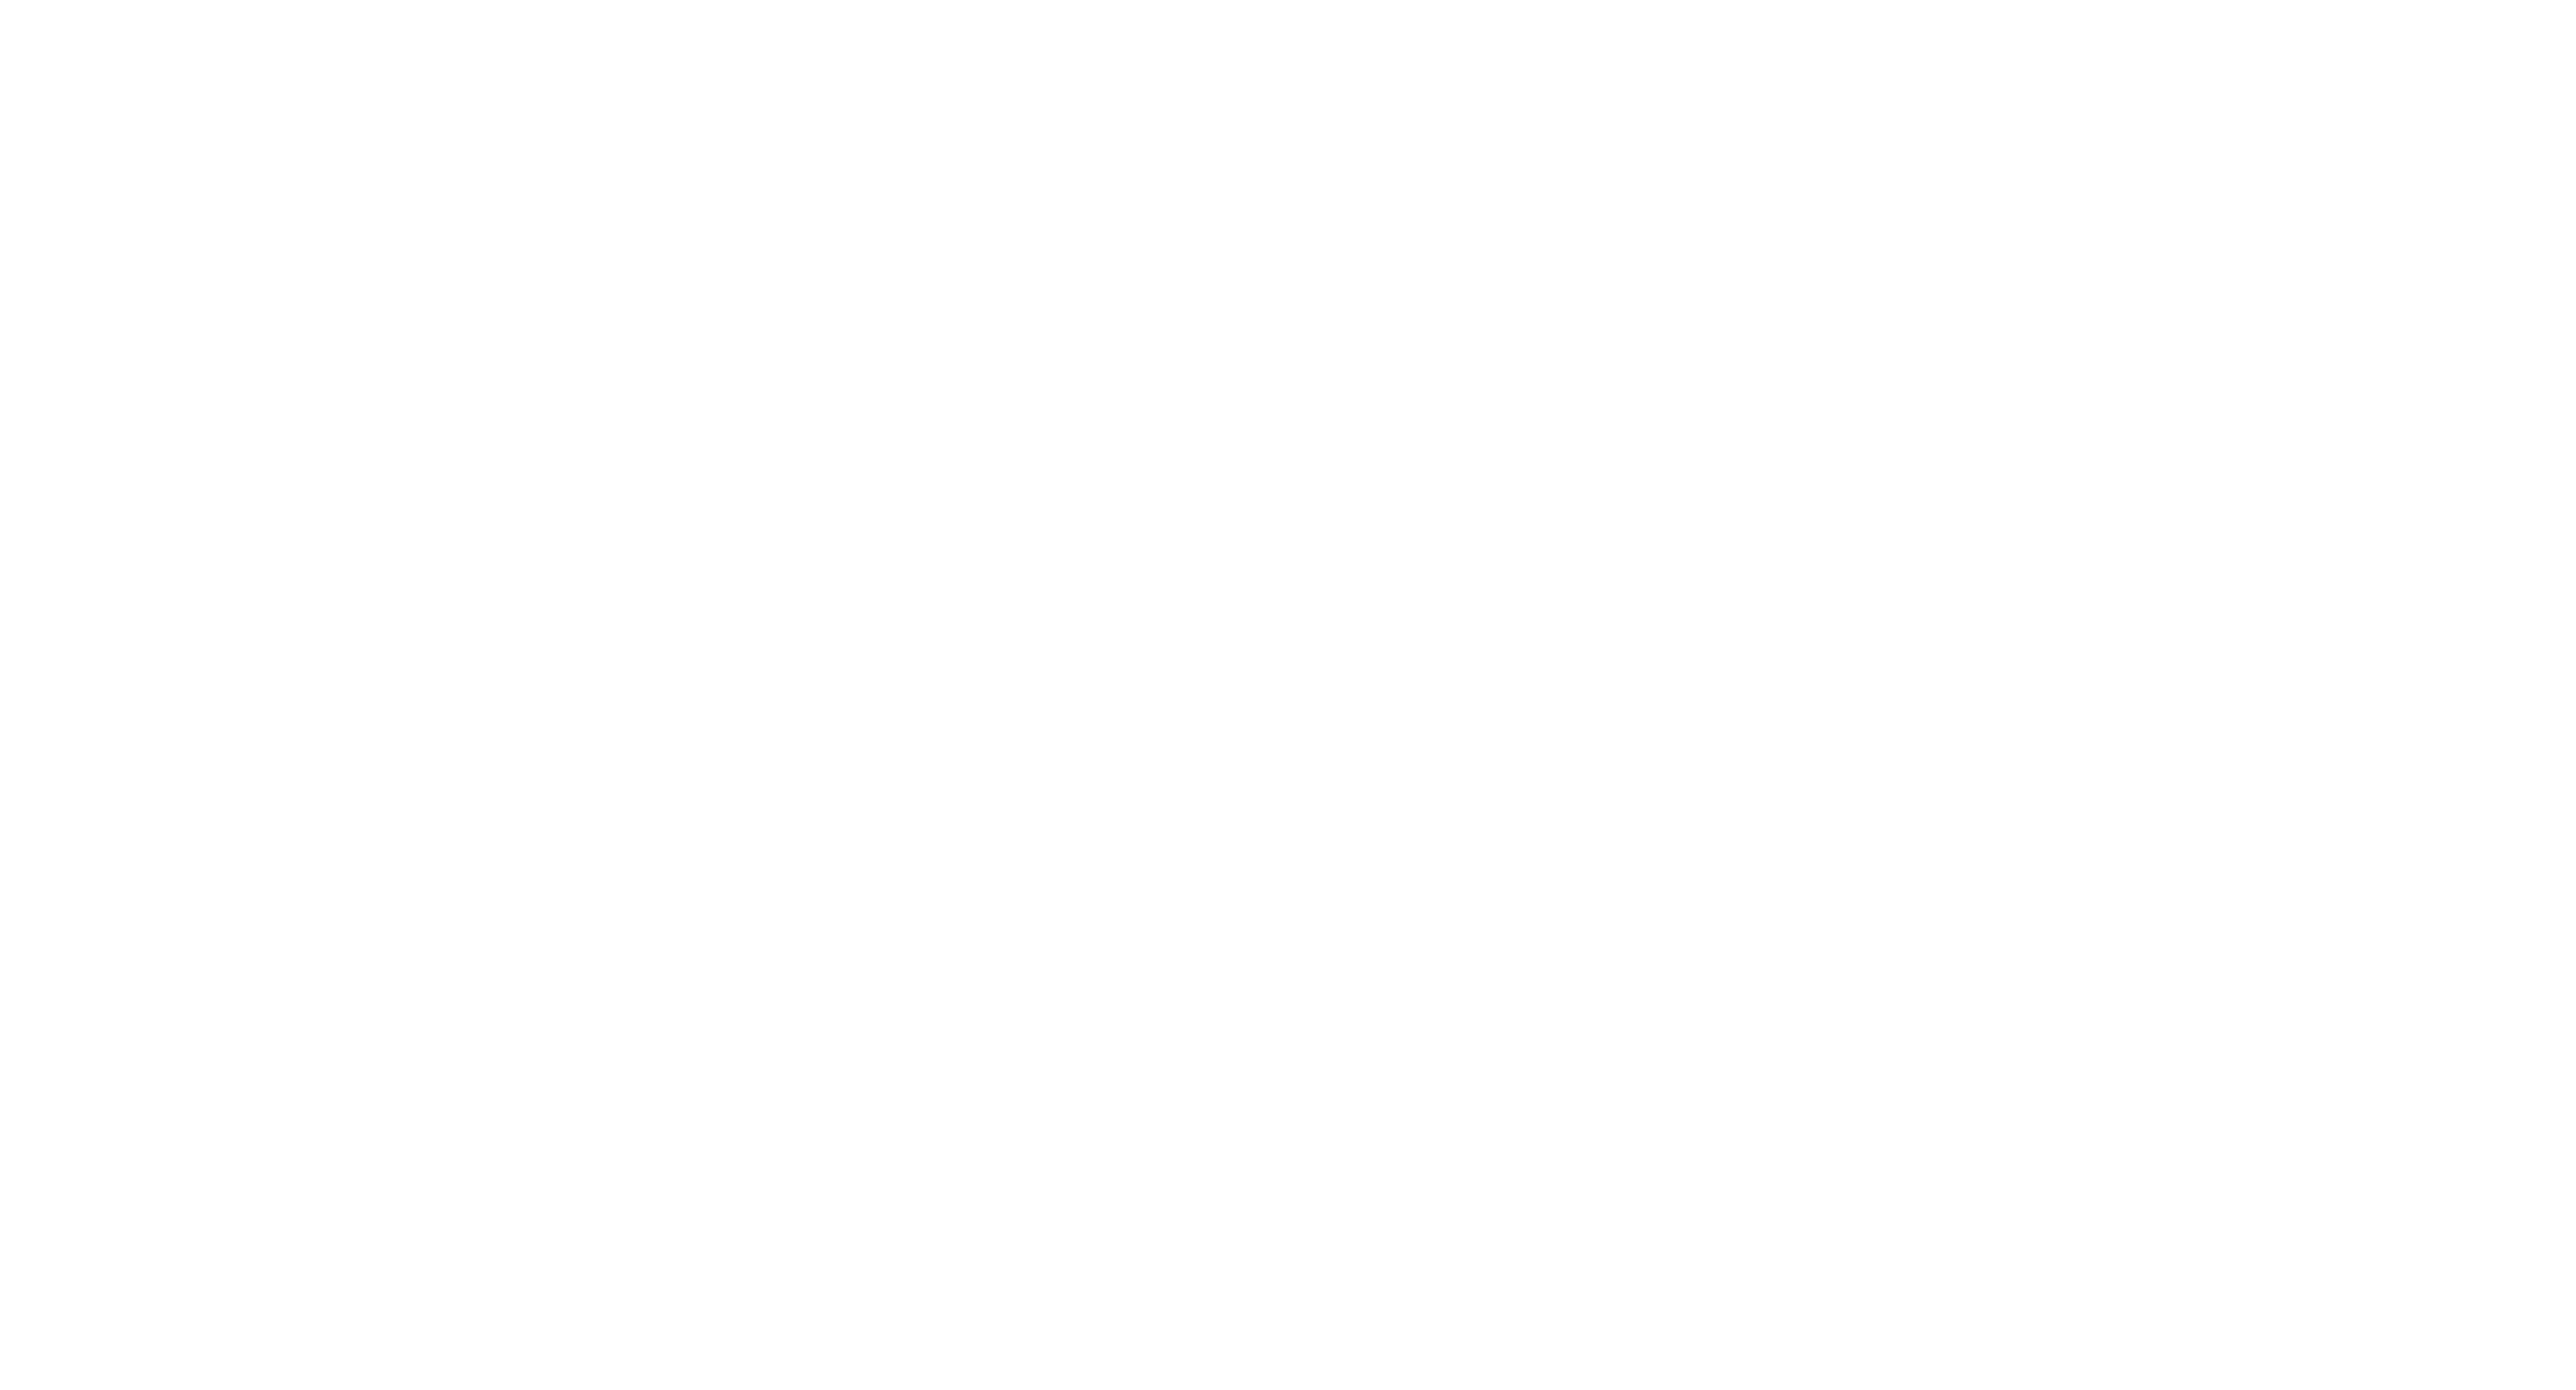 Lambeth Liberal Democrats